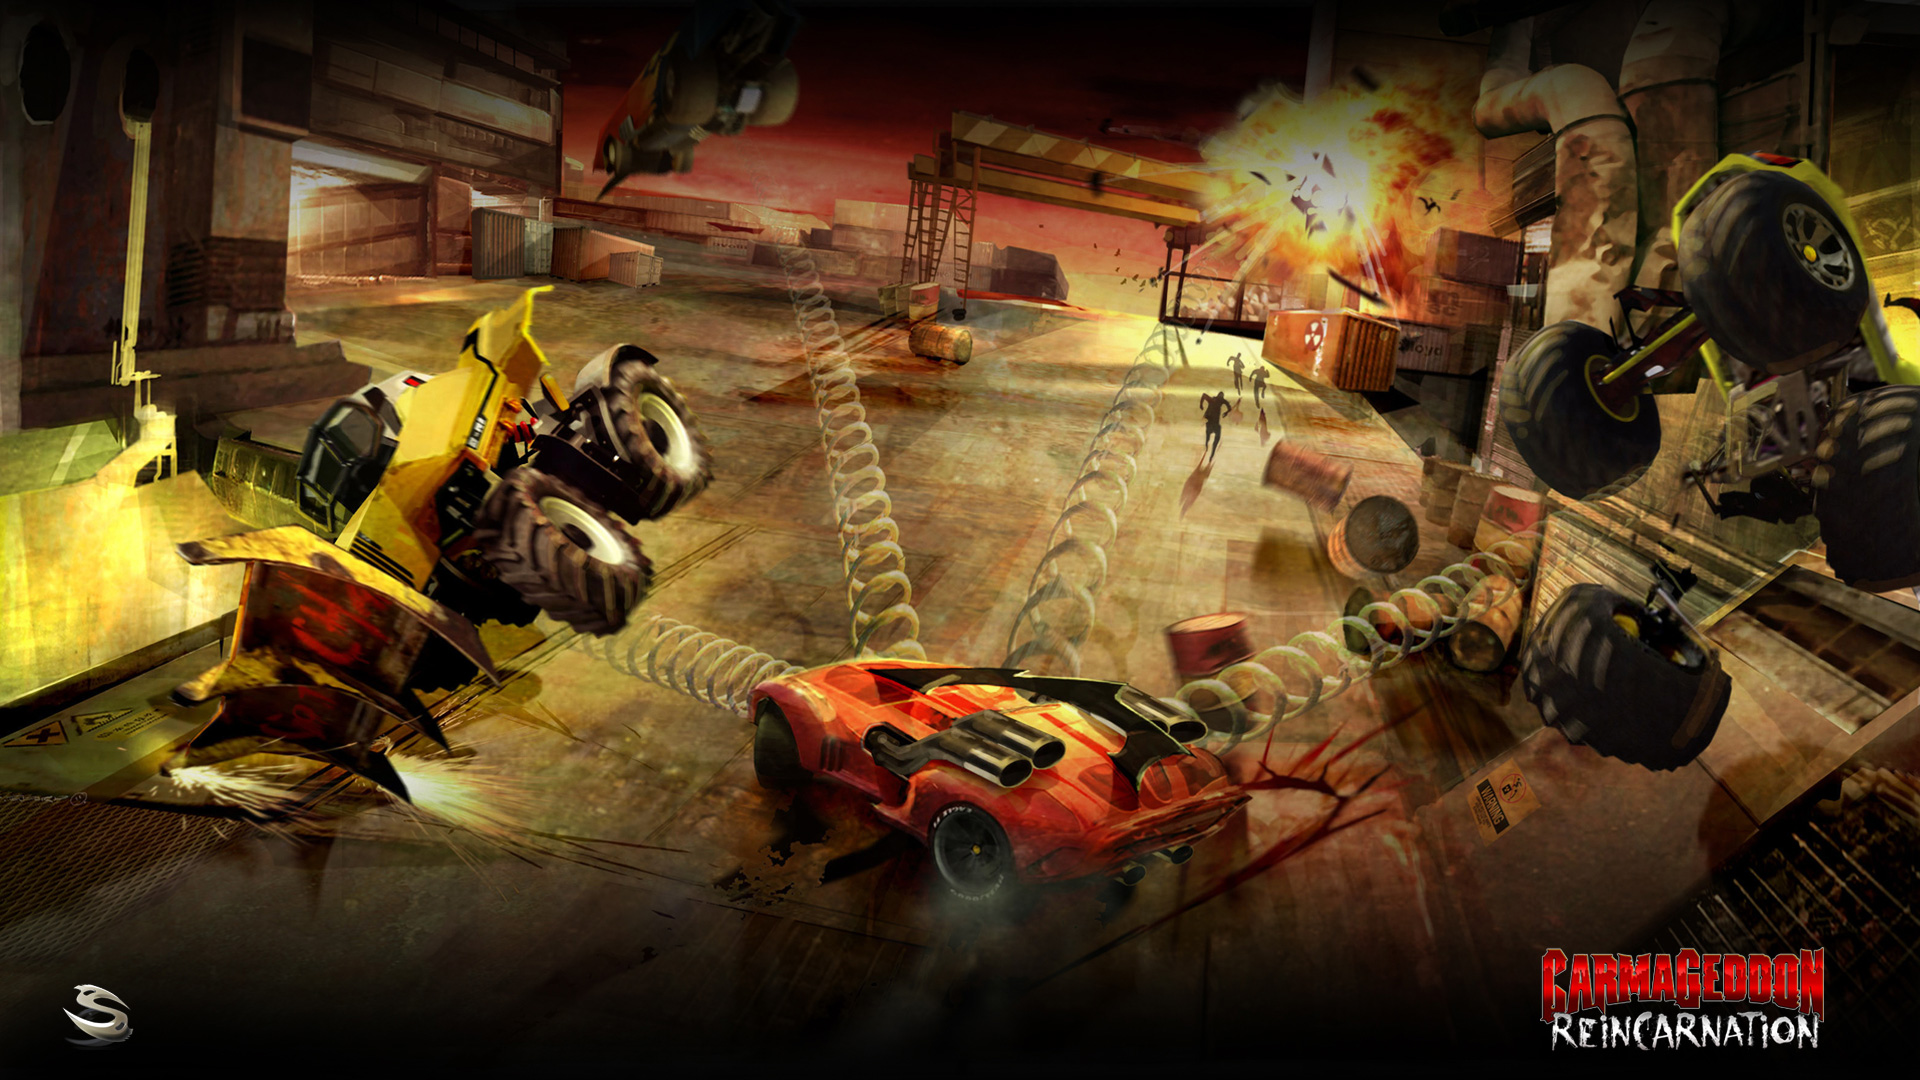 Free Carmageddon: Reincarnation Wallpaper in 1920x1080